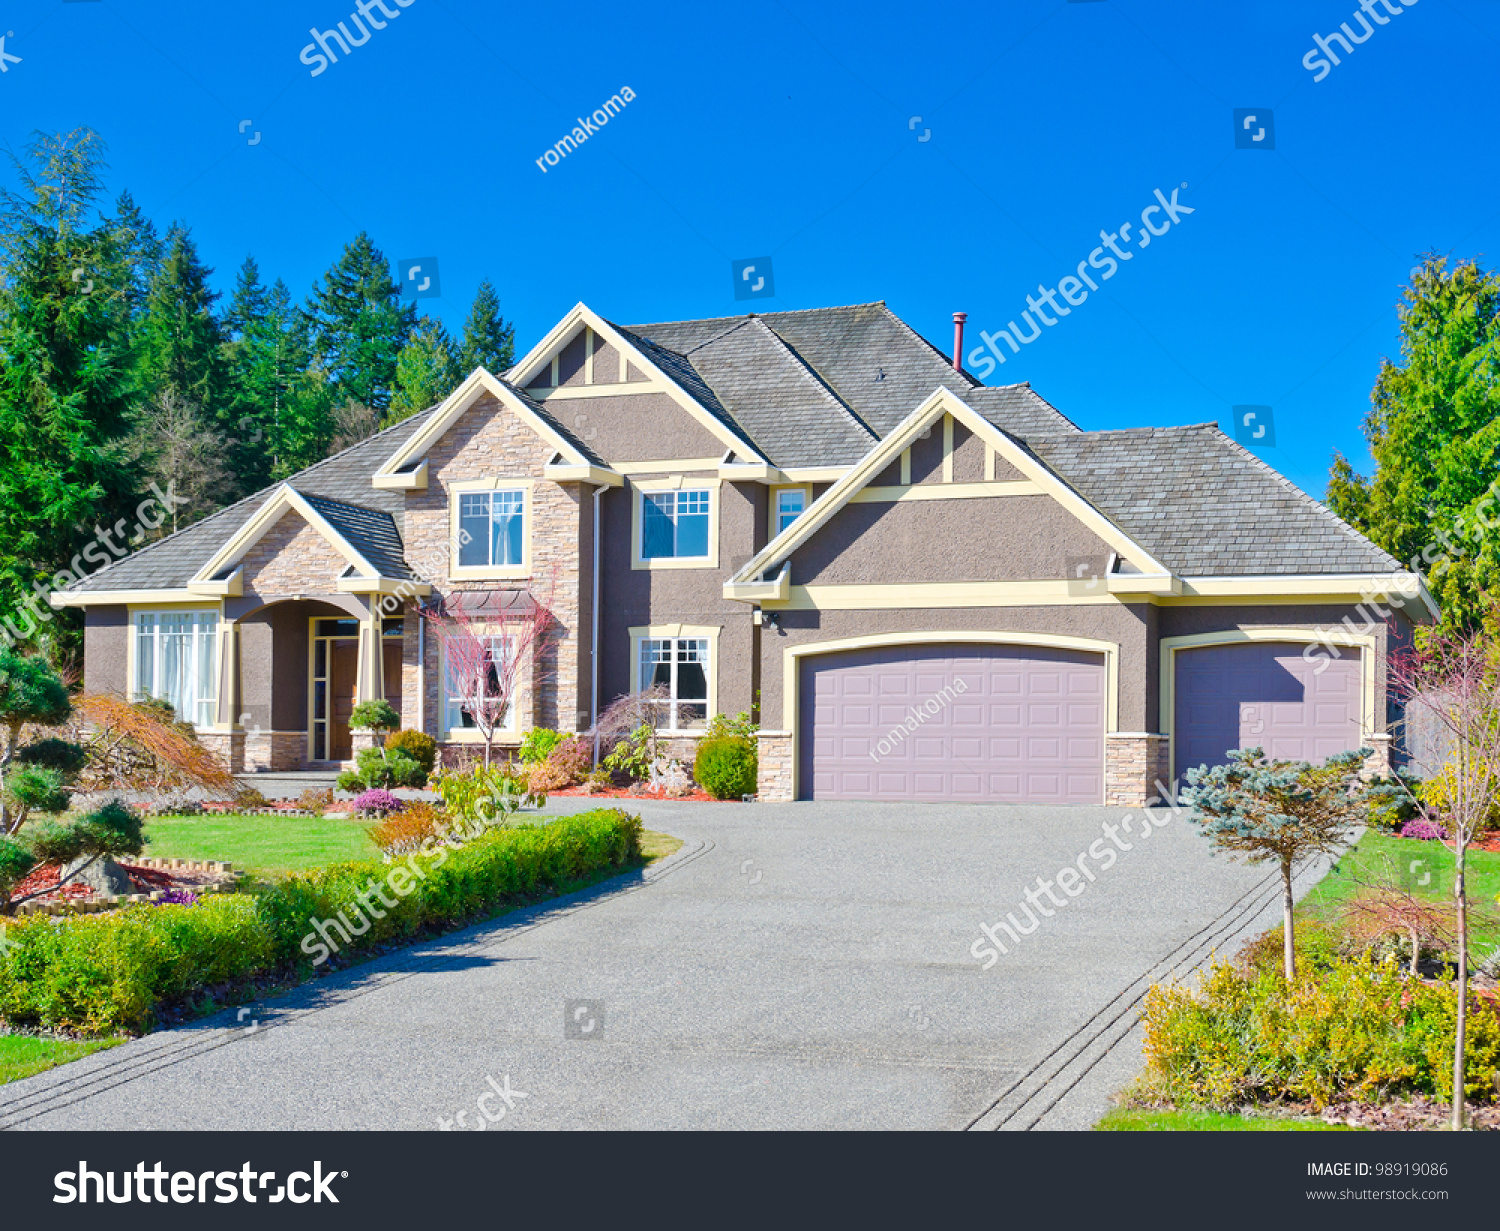 Luxury three garage entrance house in the suburbs of for Entrance from garage to house